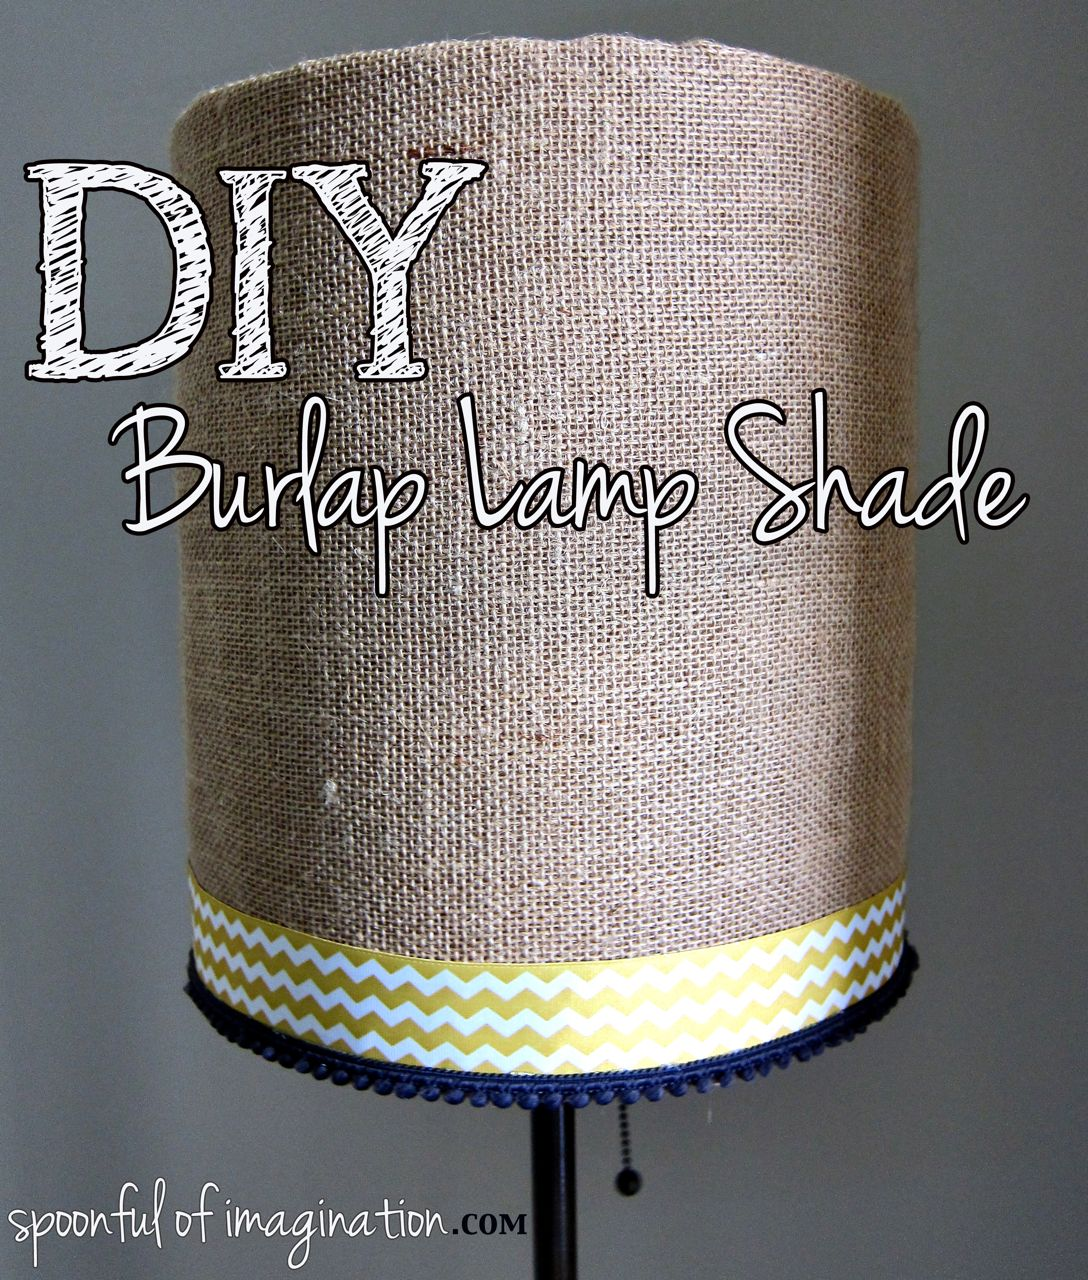 DIY Burlap Lamp Shade - Spoonful of Imagination